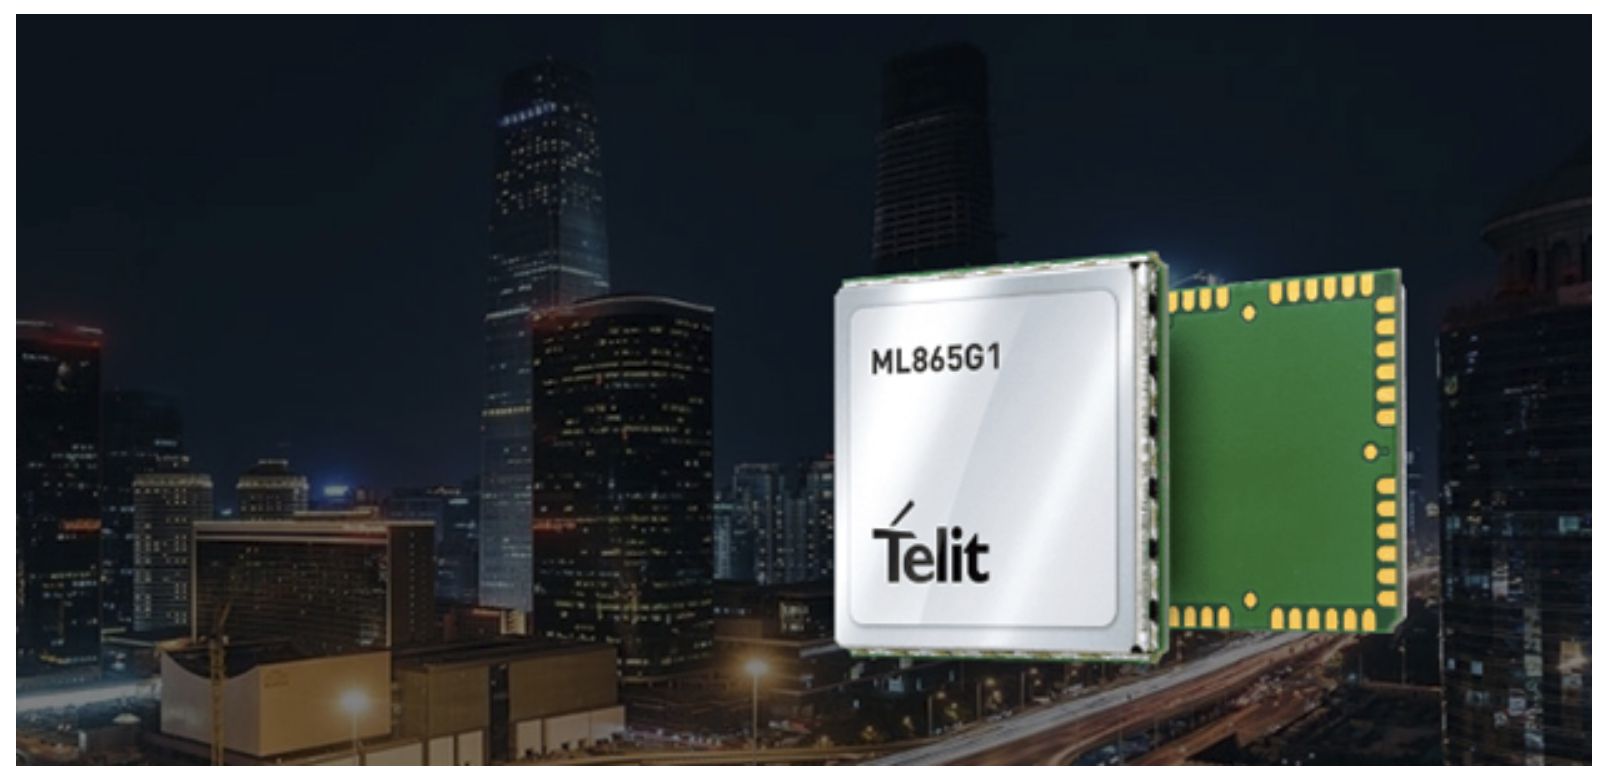 Telit modules save power for IoT applications.